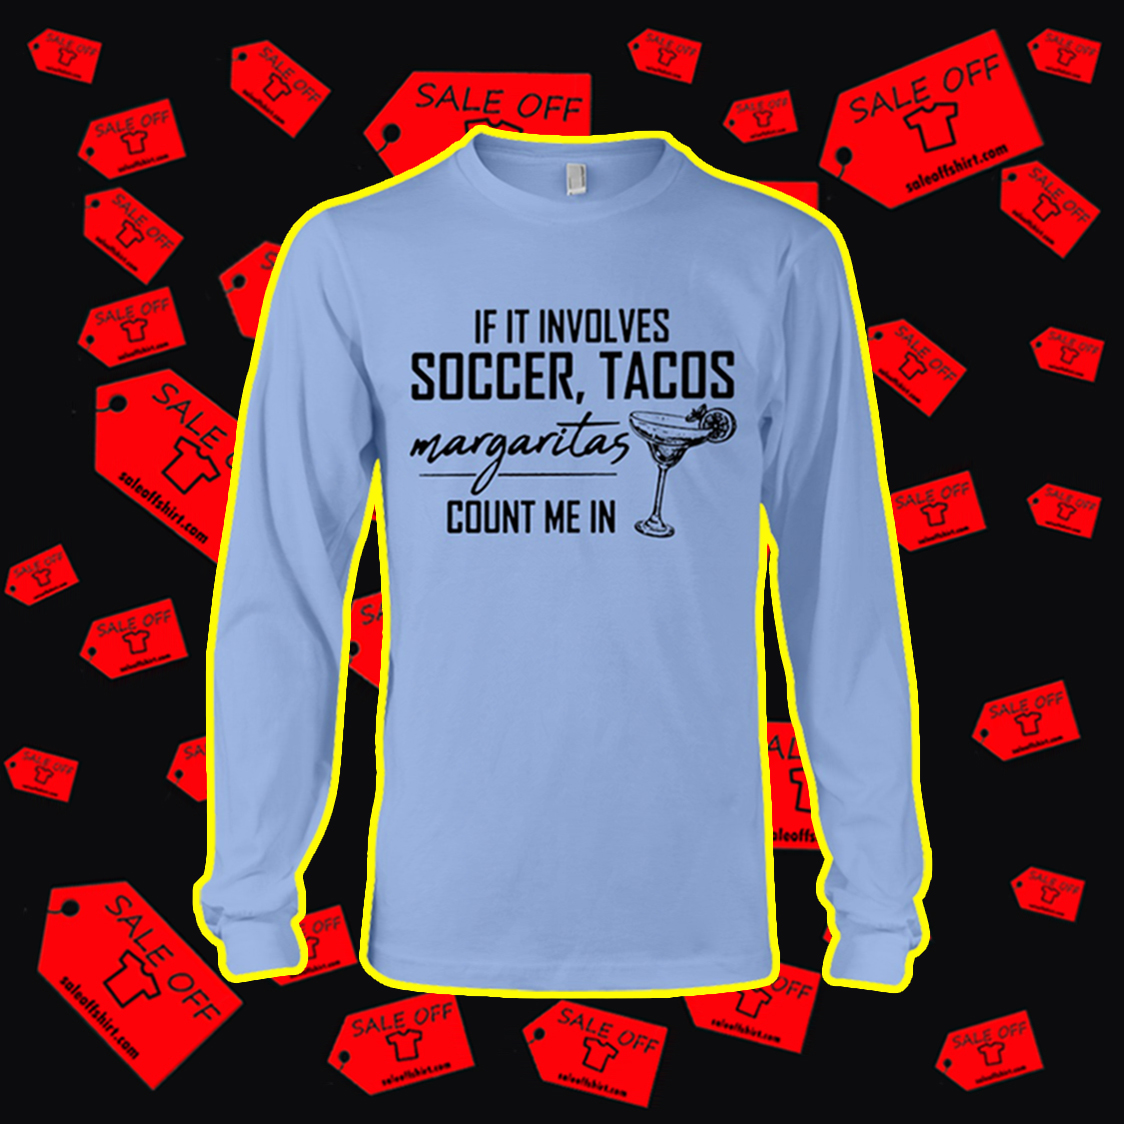 If it involves soccer tacos margaritas count me in long sleeve tee